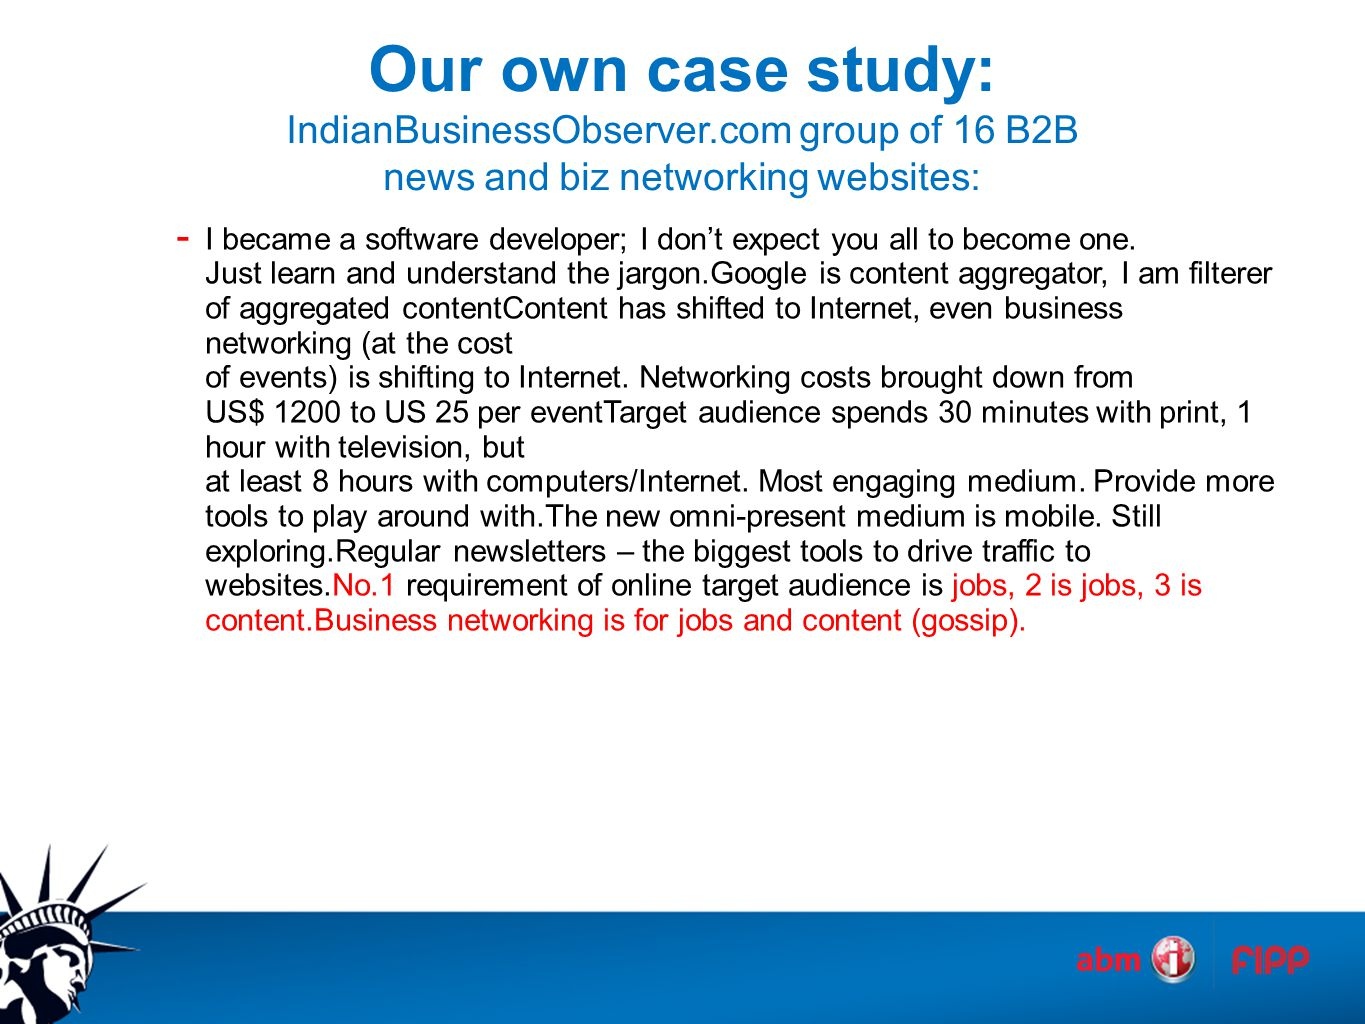 Our own case study: IndianBusinessObserver.com group of 16 B2B news and biz networking websites: - I became a software developer; I don't expect you all to become one.